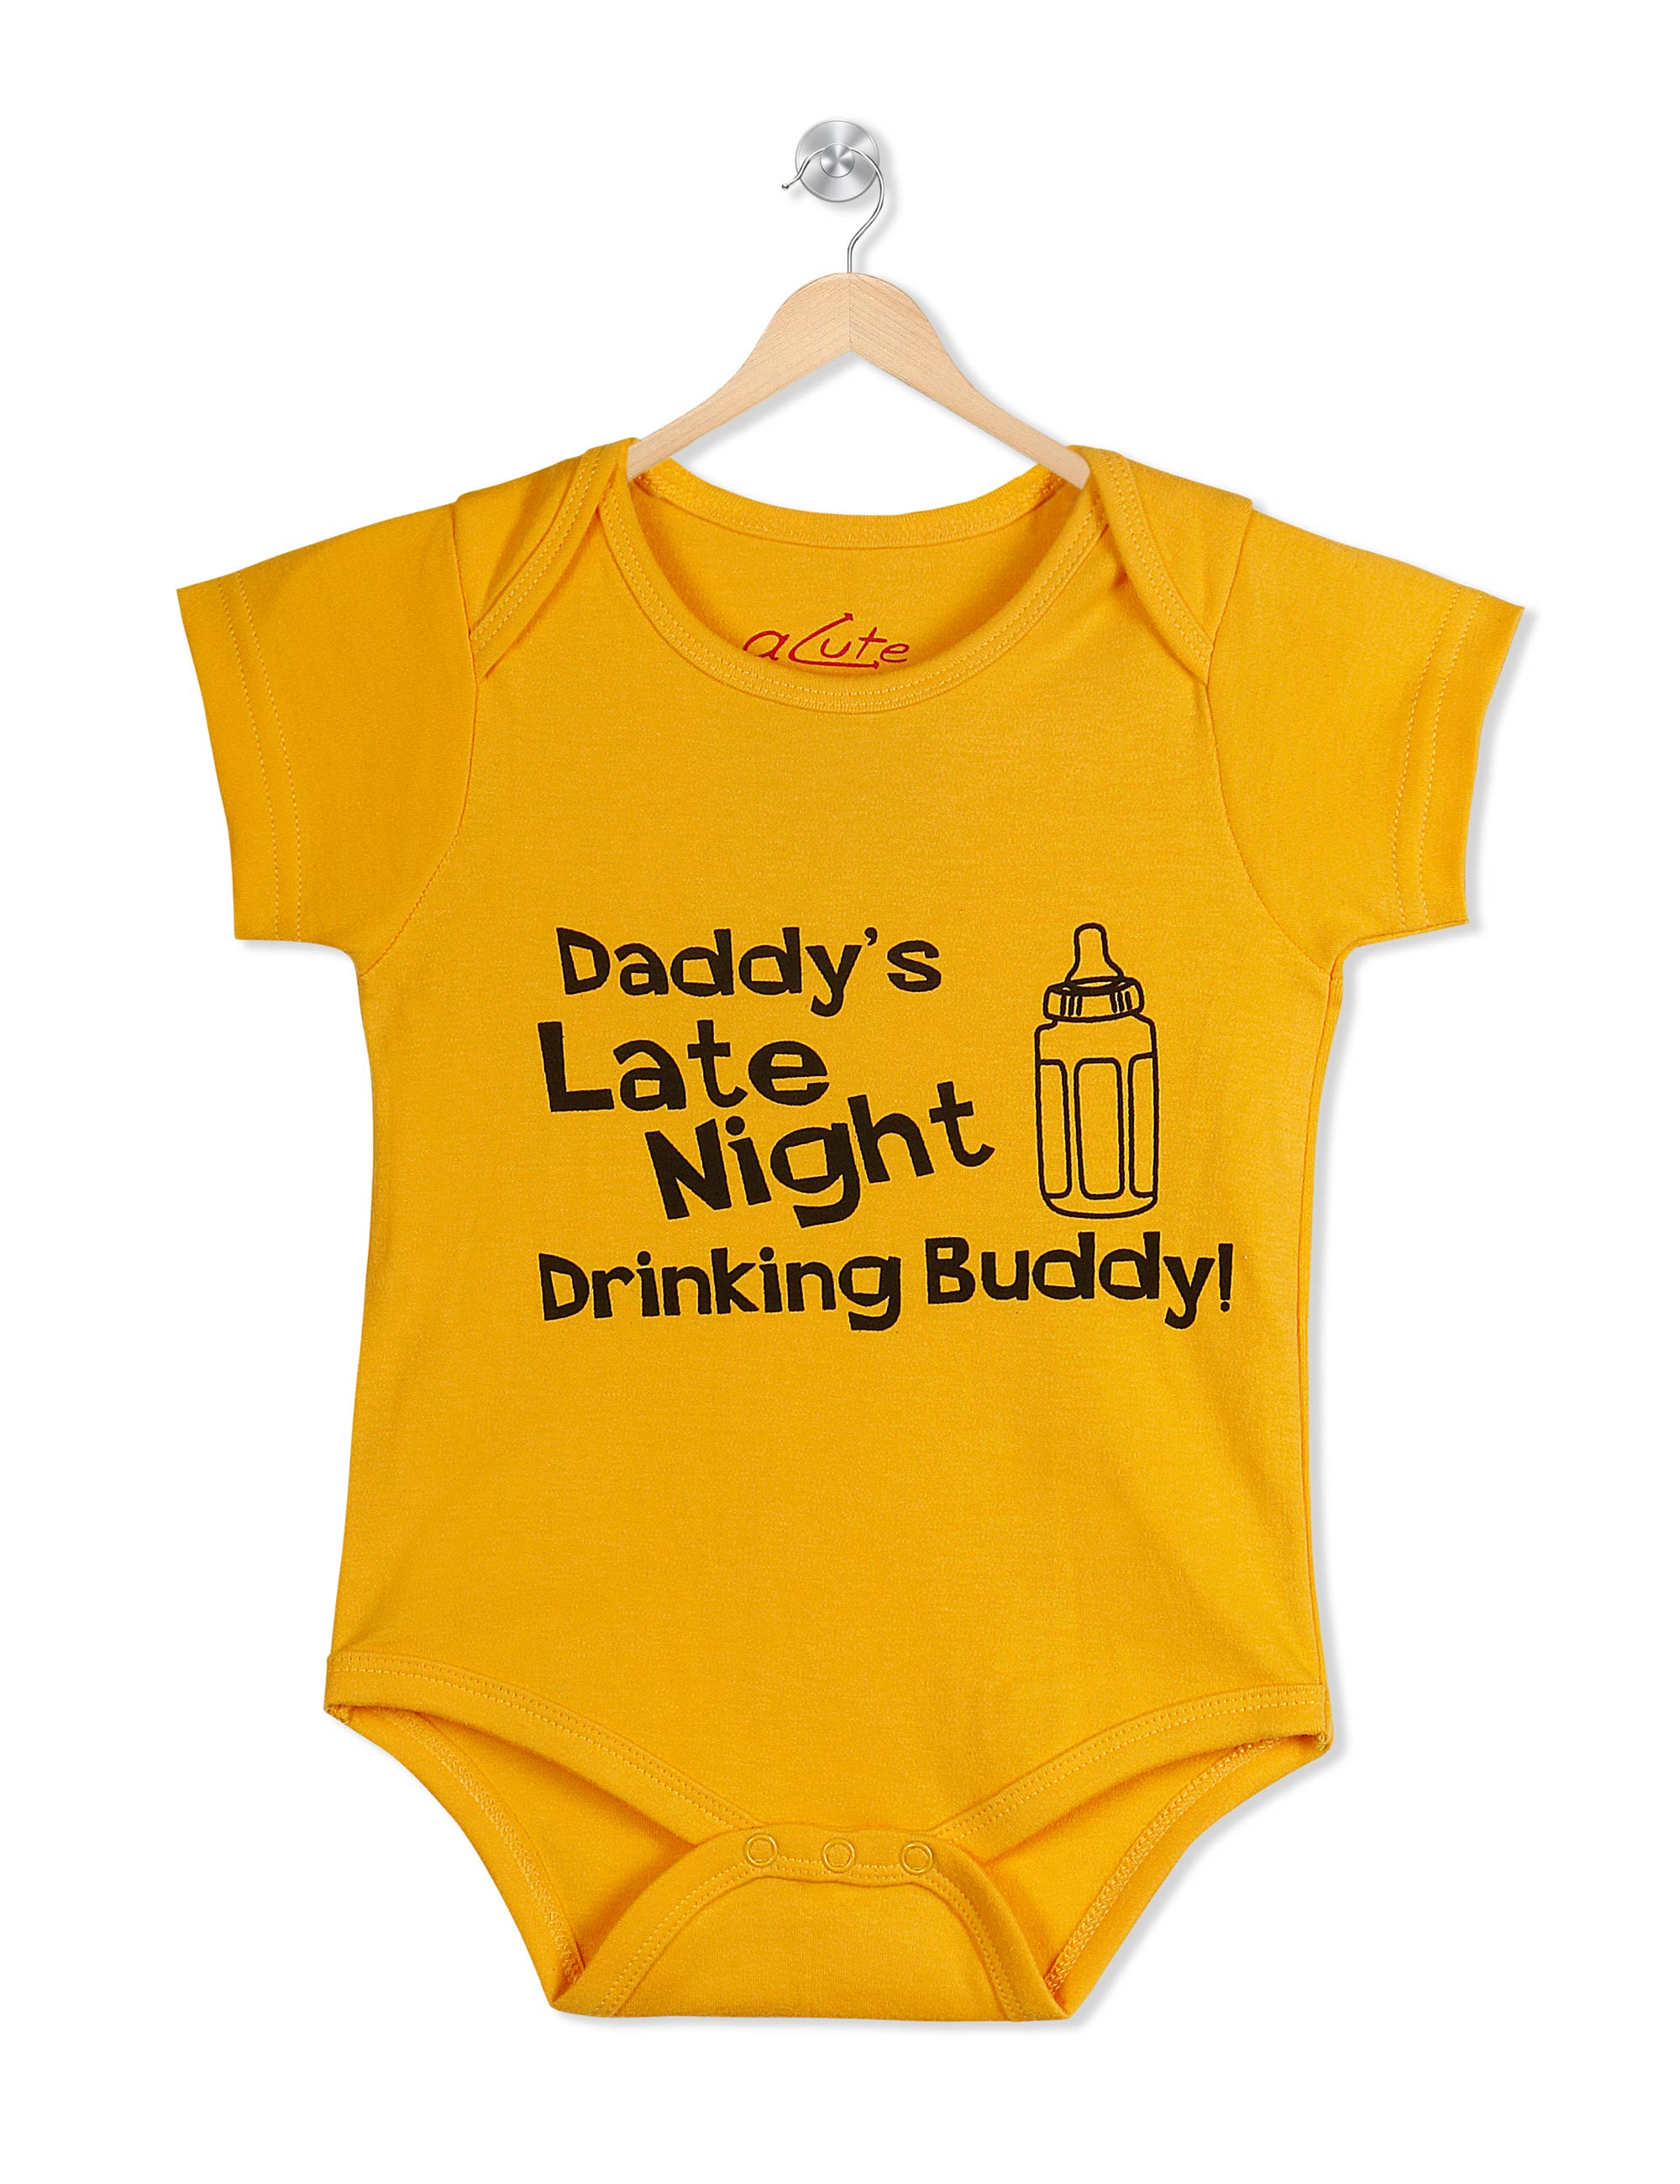 Daddy's Late Night Drinking Buddy Cotton Baby Romper